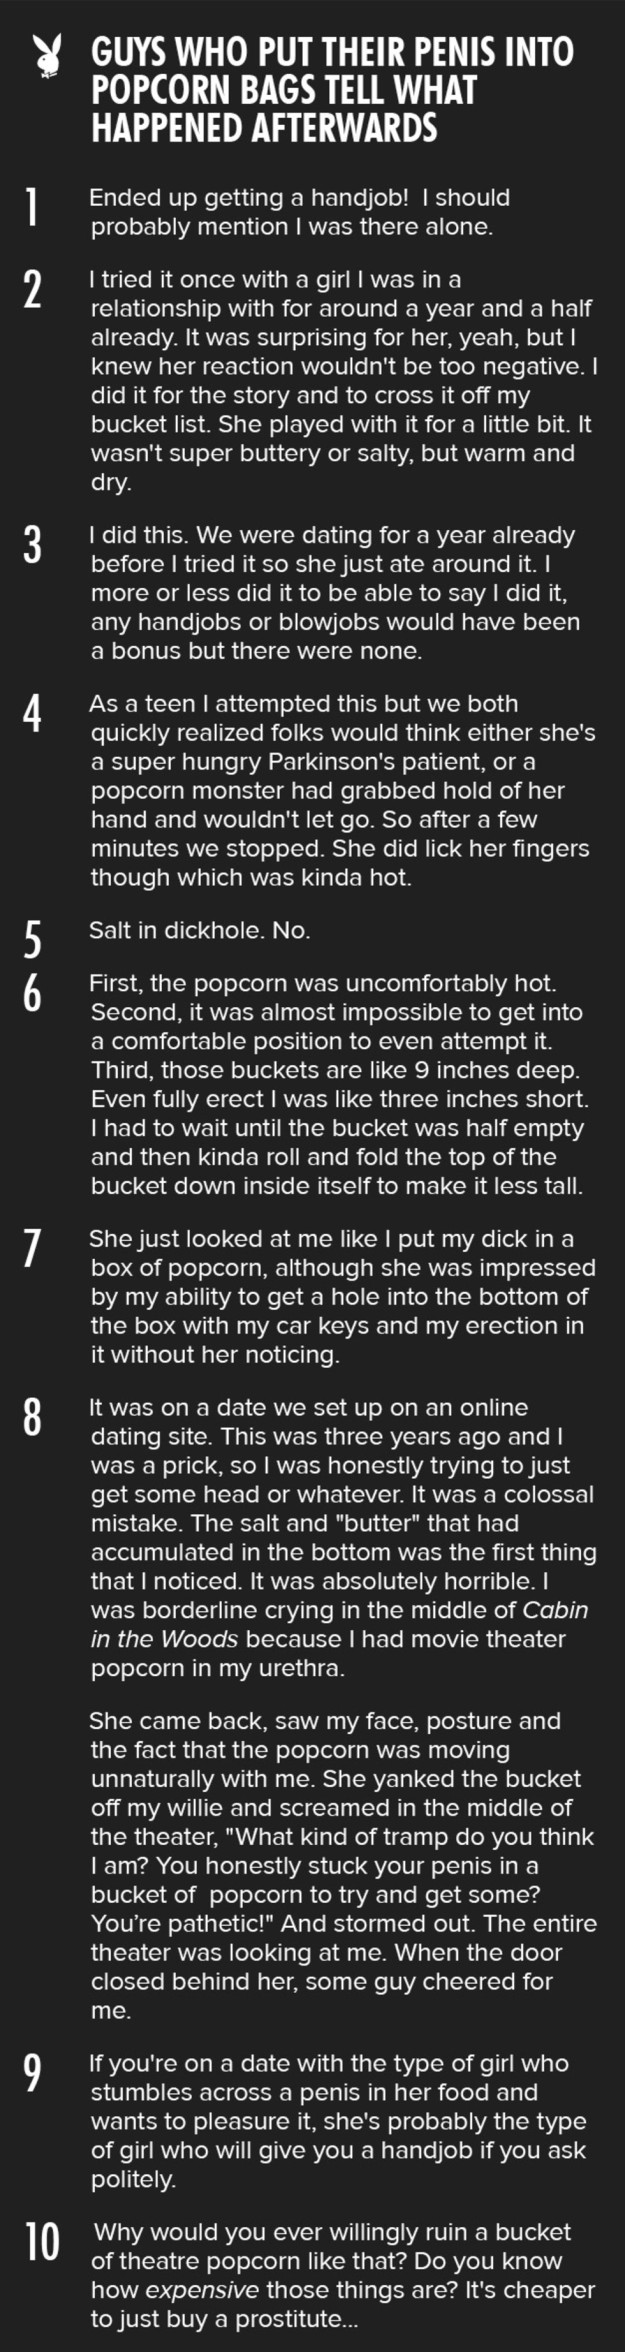 humor-guys-put-penis-into-popcorn